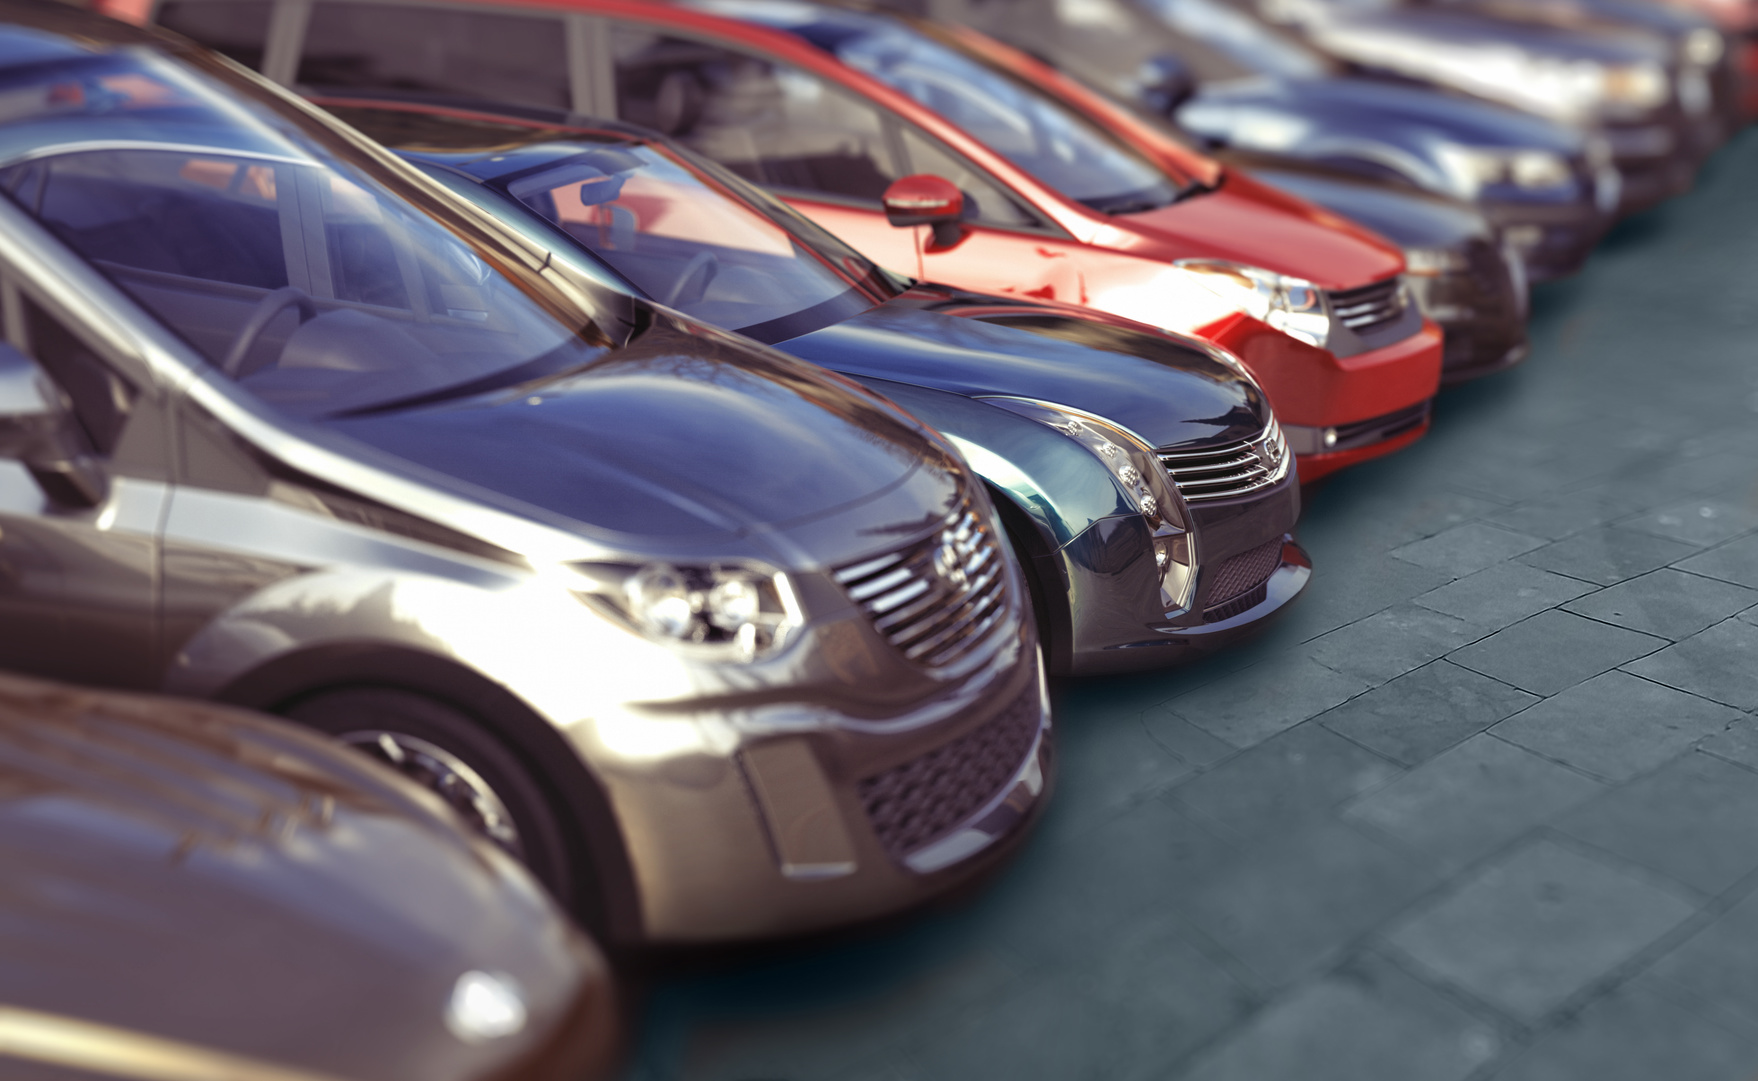 Cars in a line at a dealership